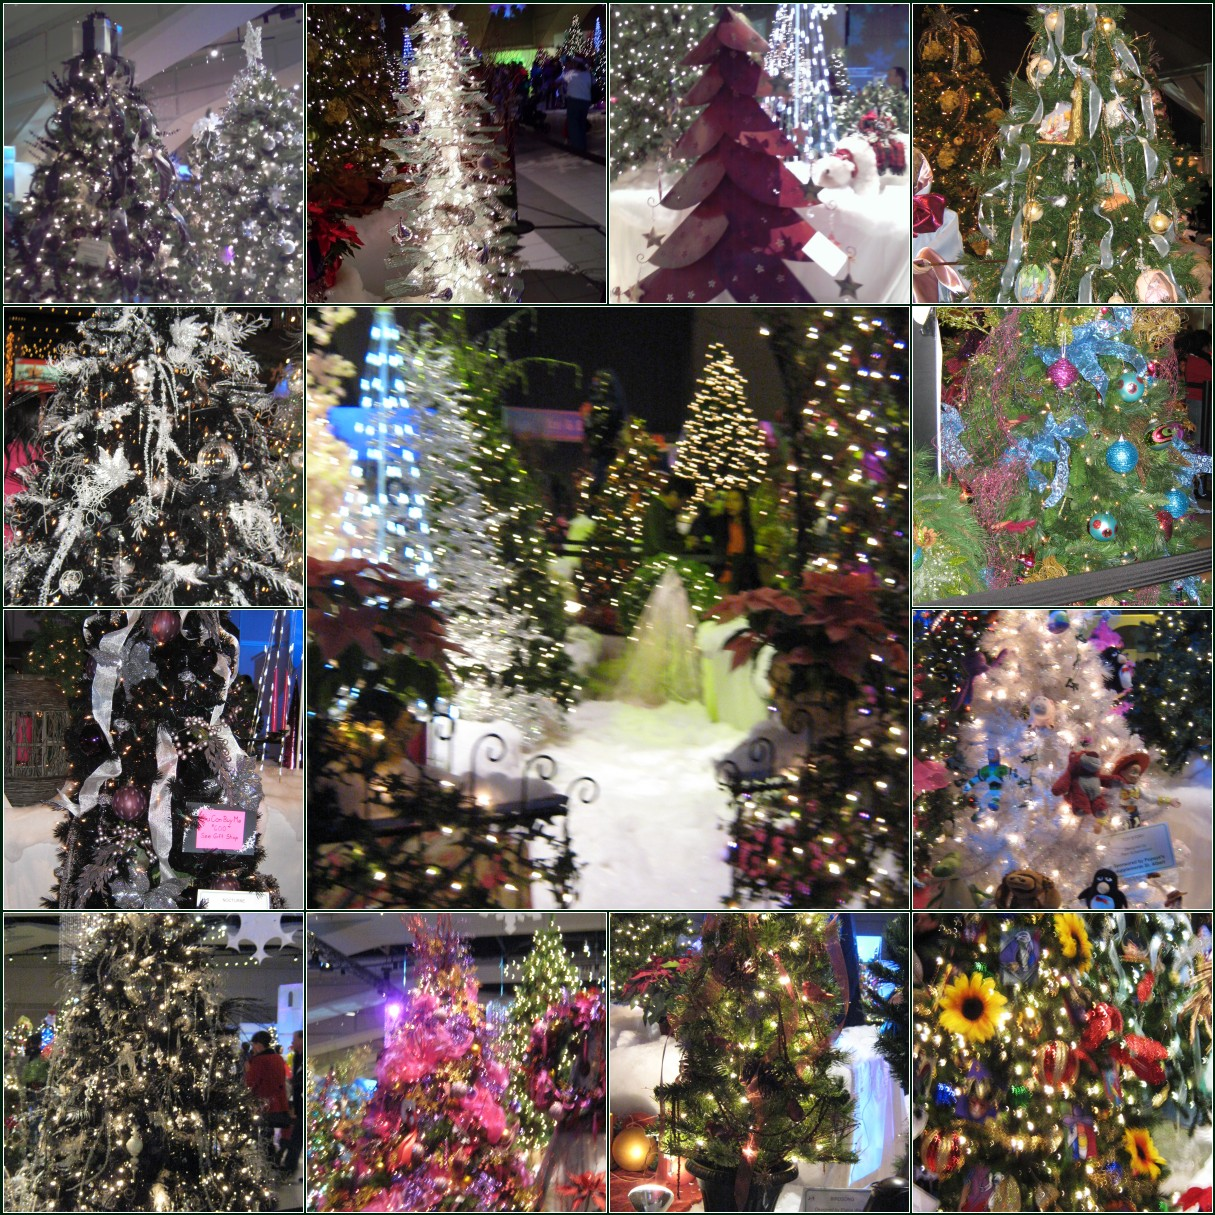 Commercial Christmas Trees From 12 To 100 In Height: LIVING THE GARDENING LIFE: How To Decorate A Christmas